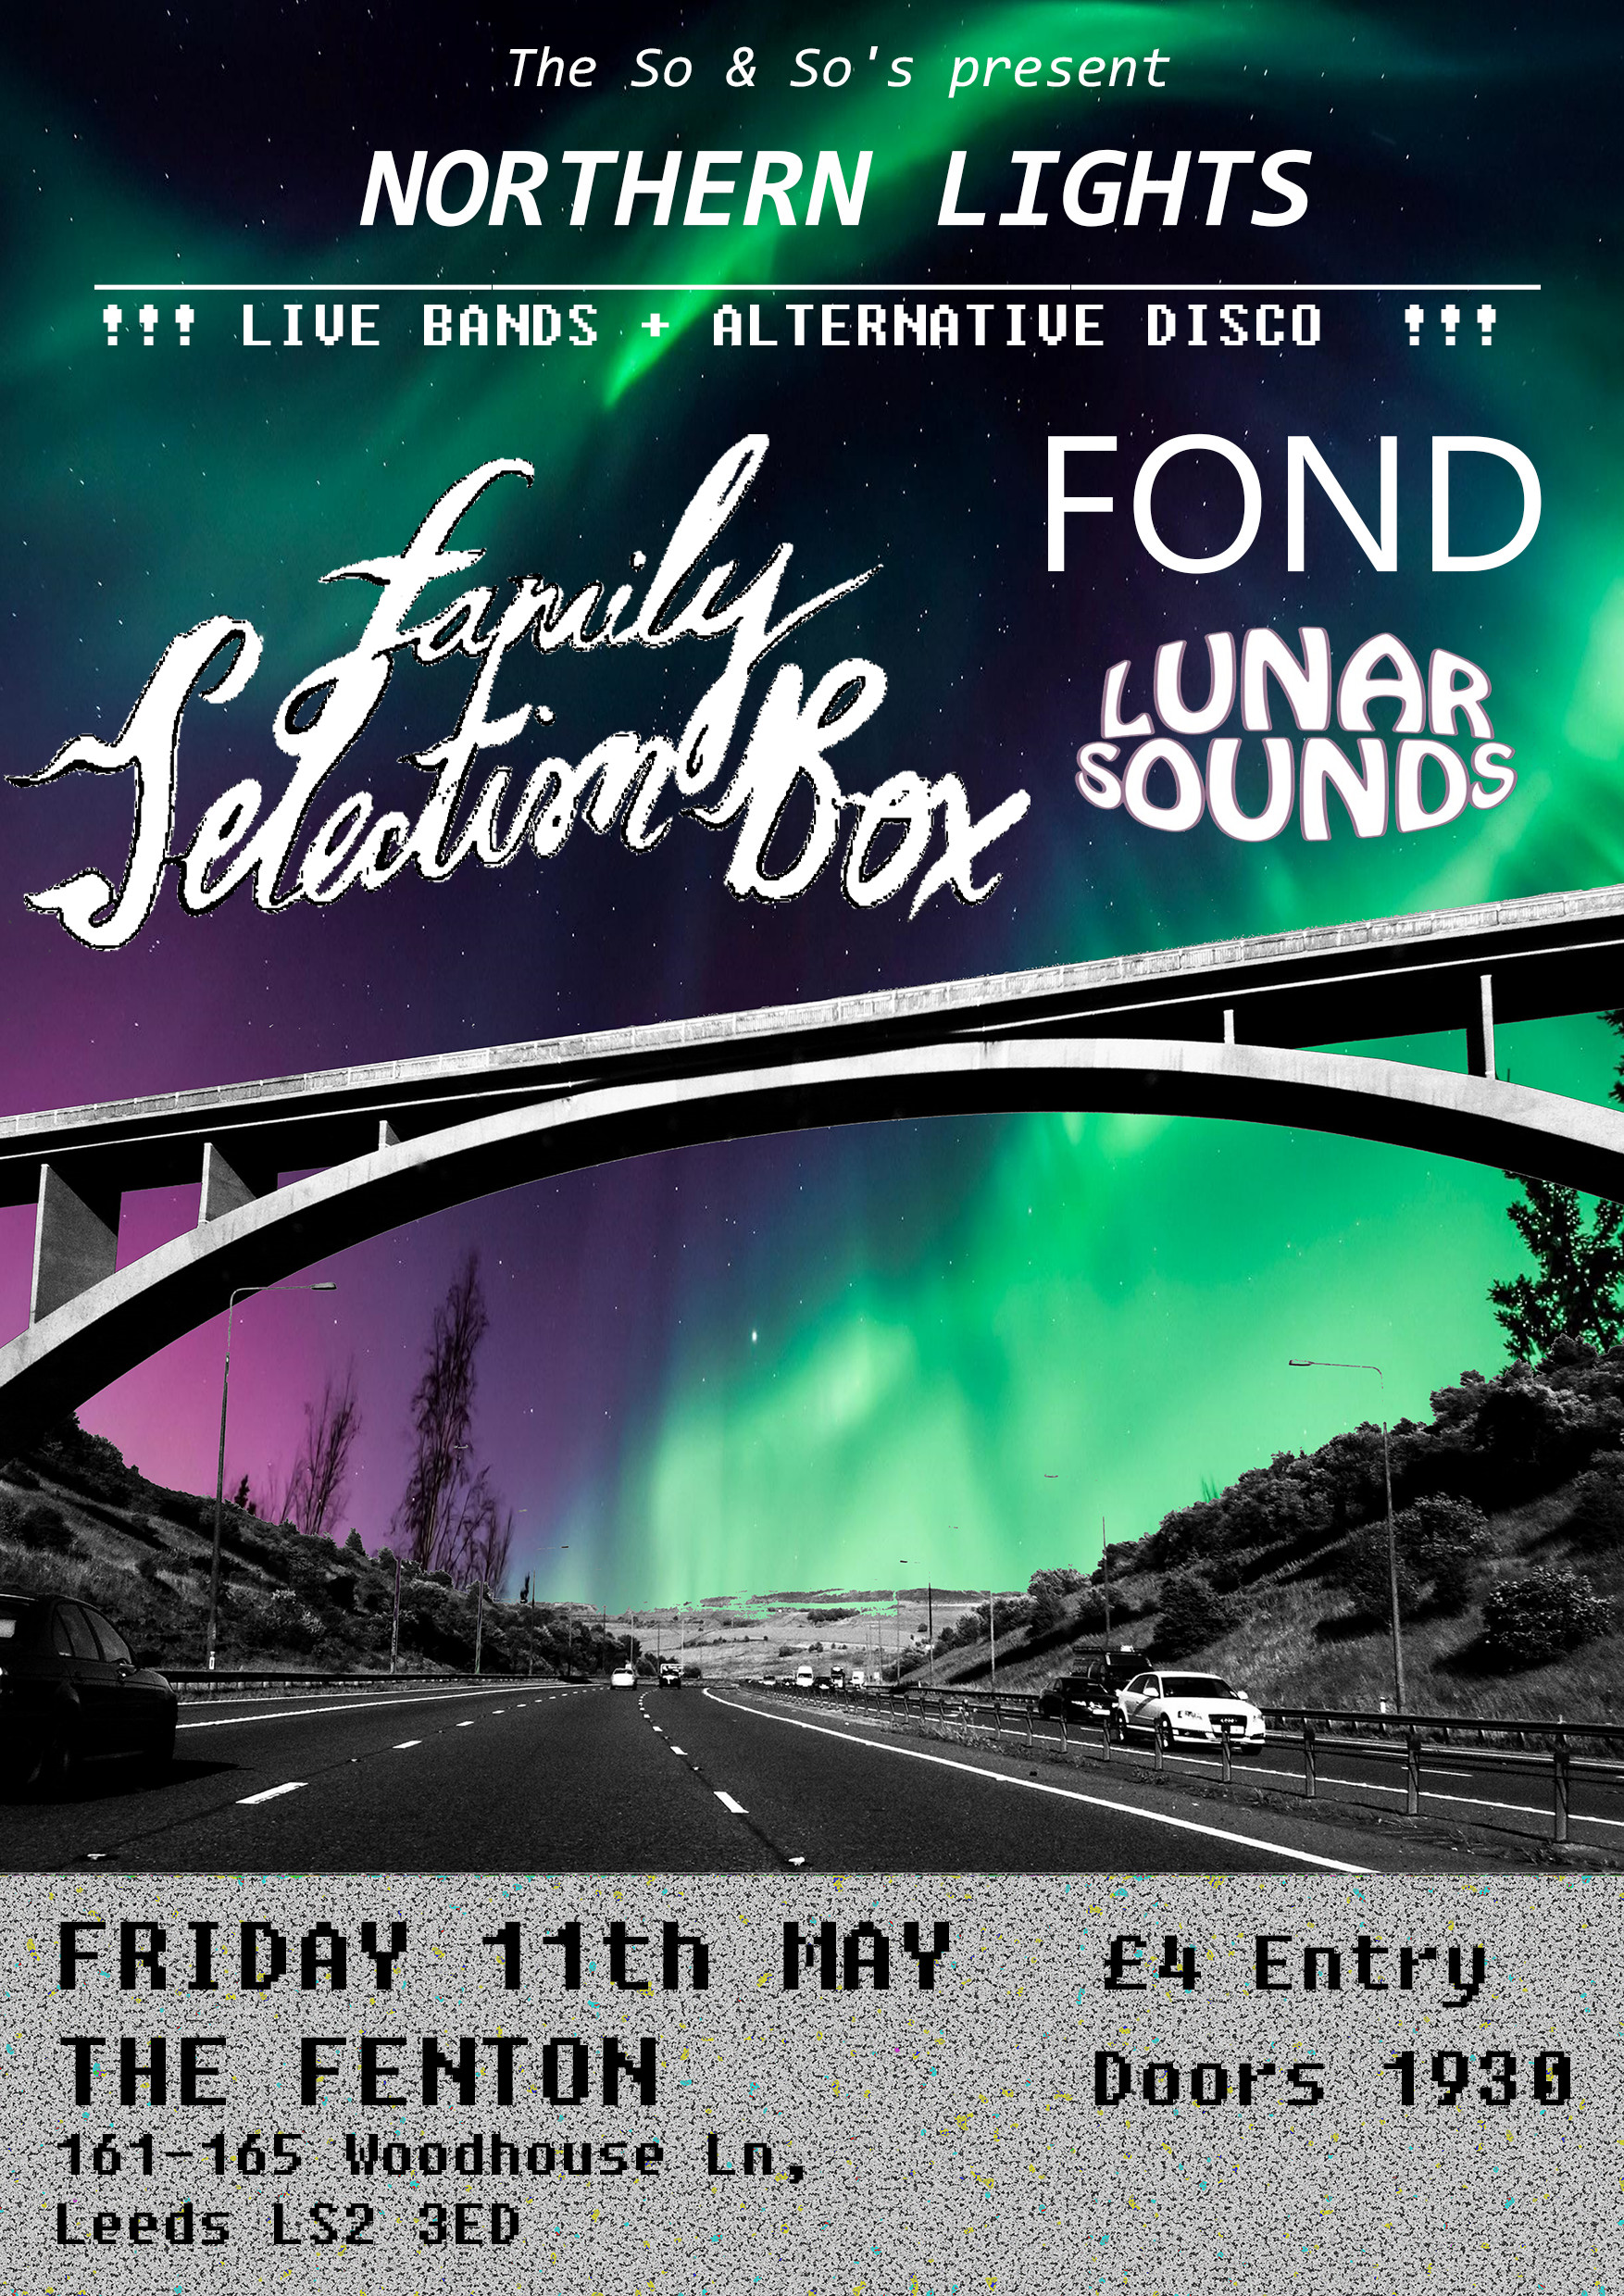 Northern Lights with Family Selection Box / Fond / Lunar Sounds Live at The Fenton Leeds 00, May 11